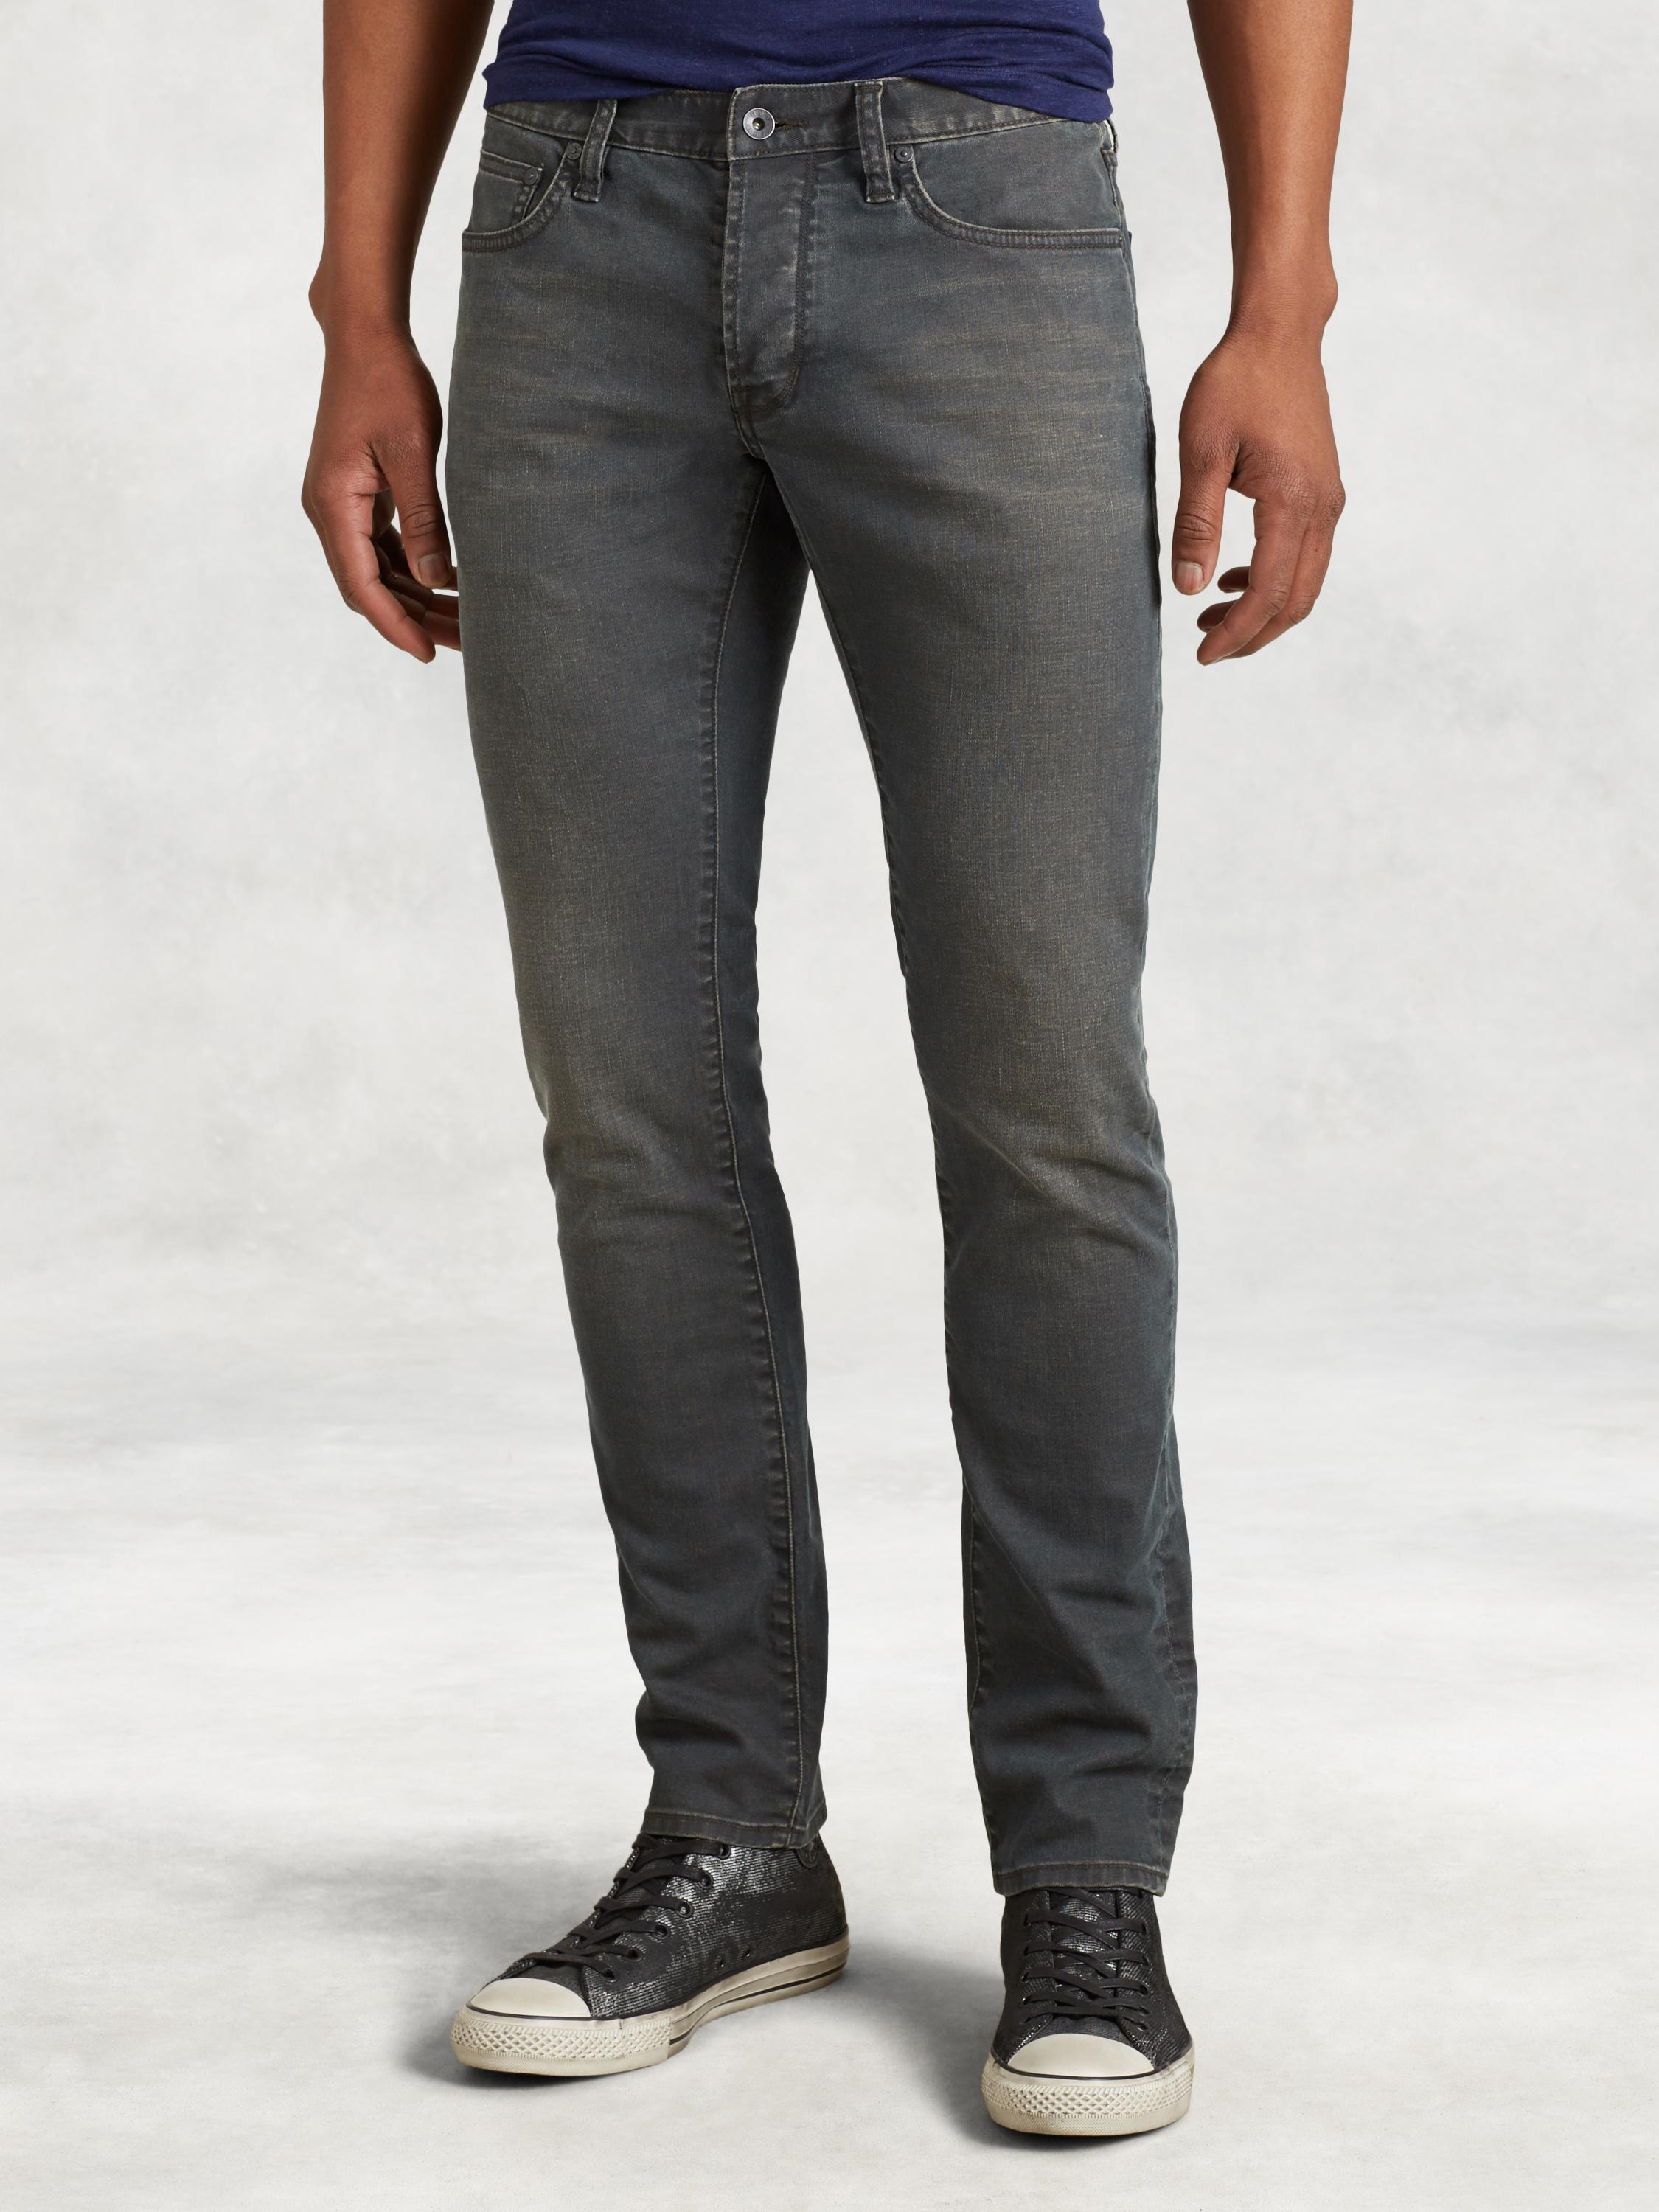 Wight Hand Distressed Jean